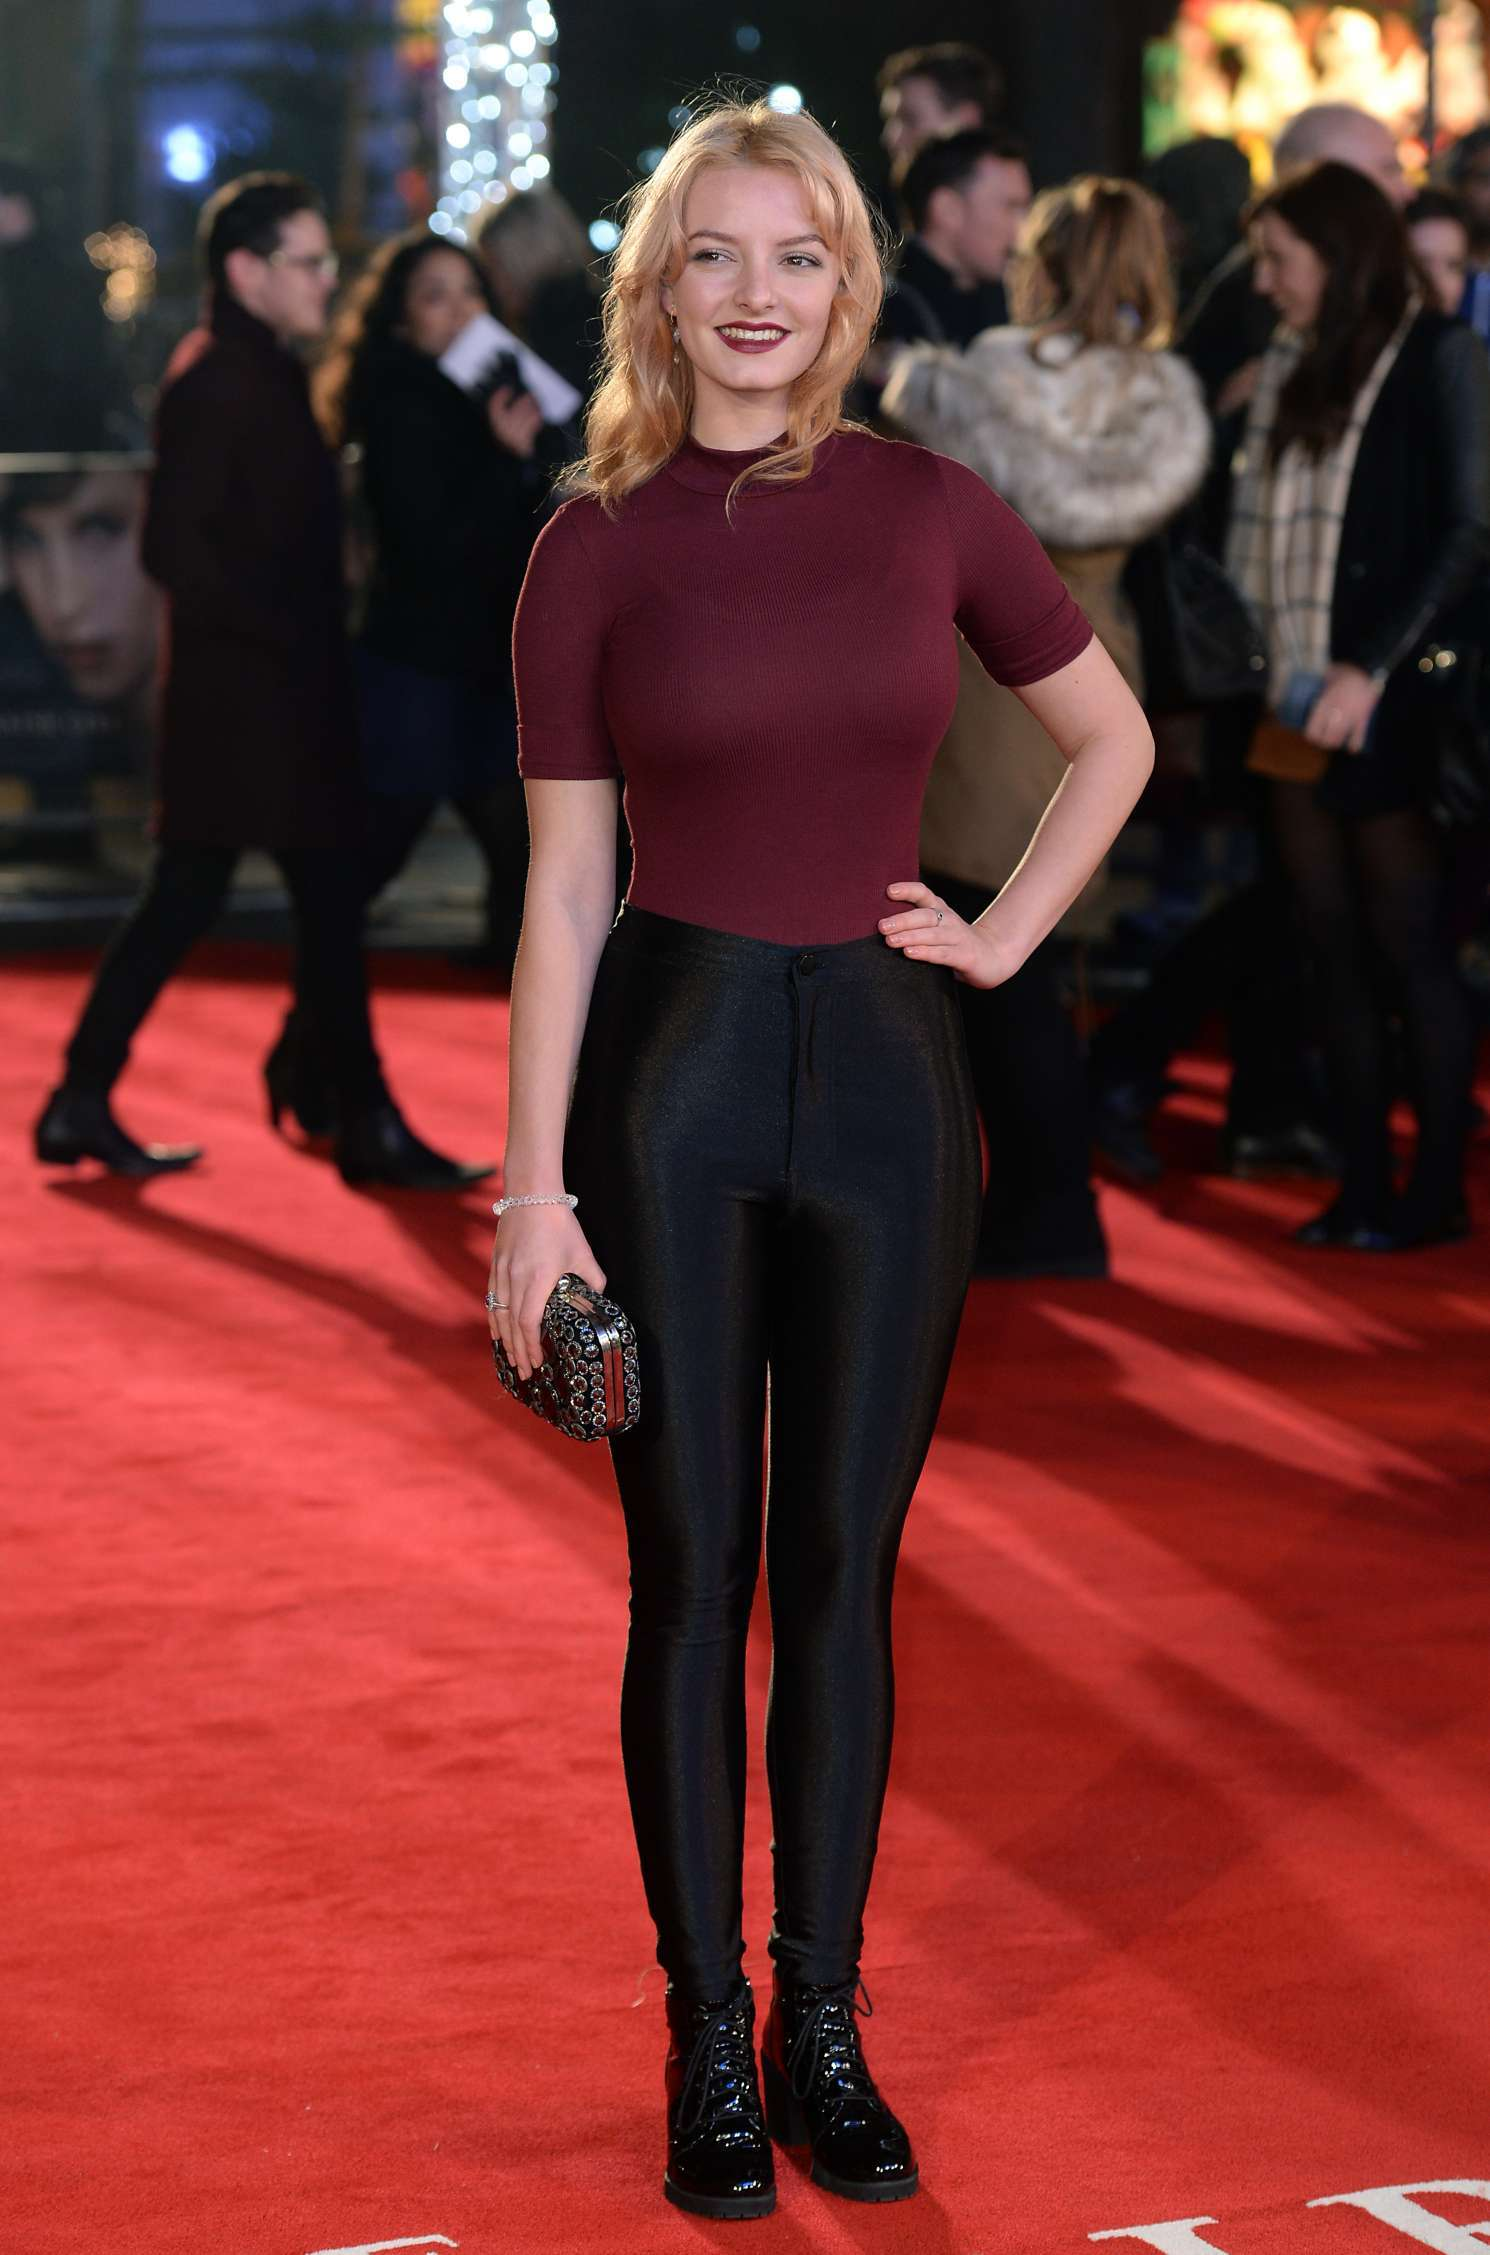 Dakota Blue Richards The Danish Girl premiere in London